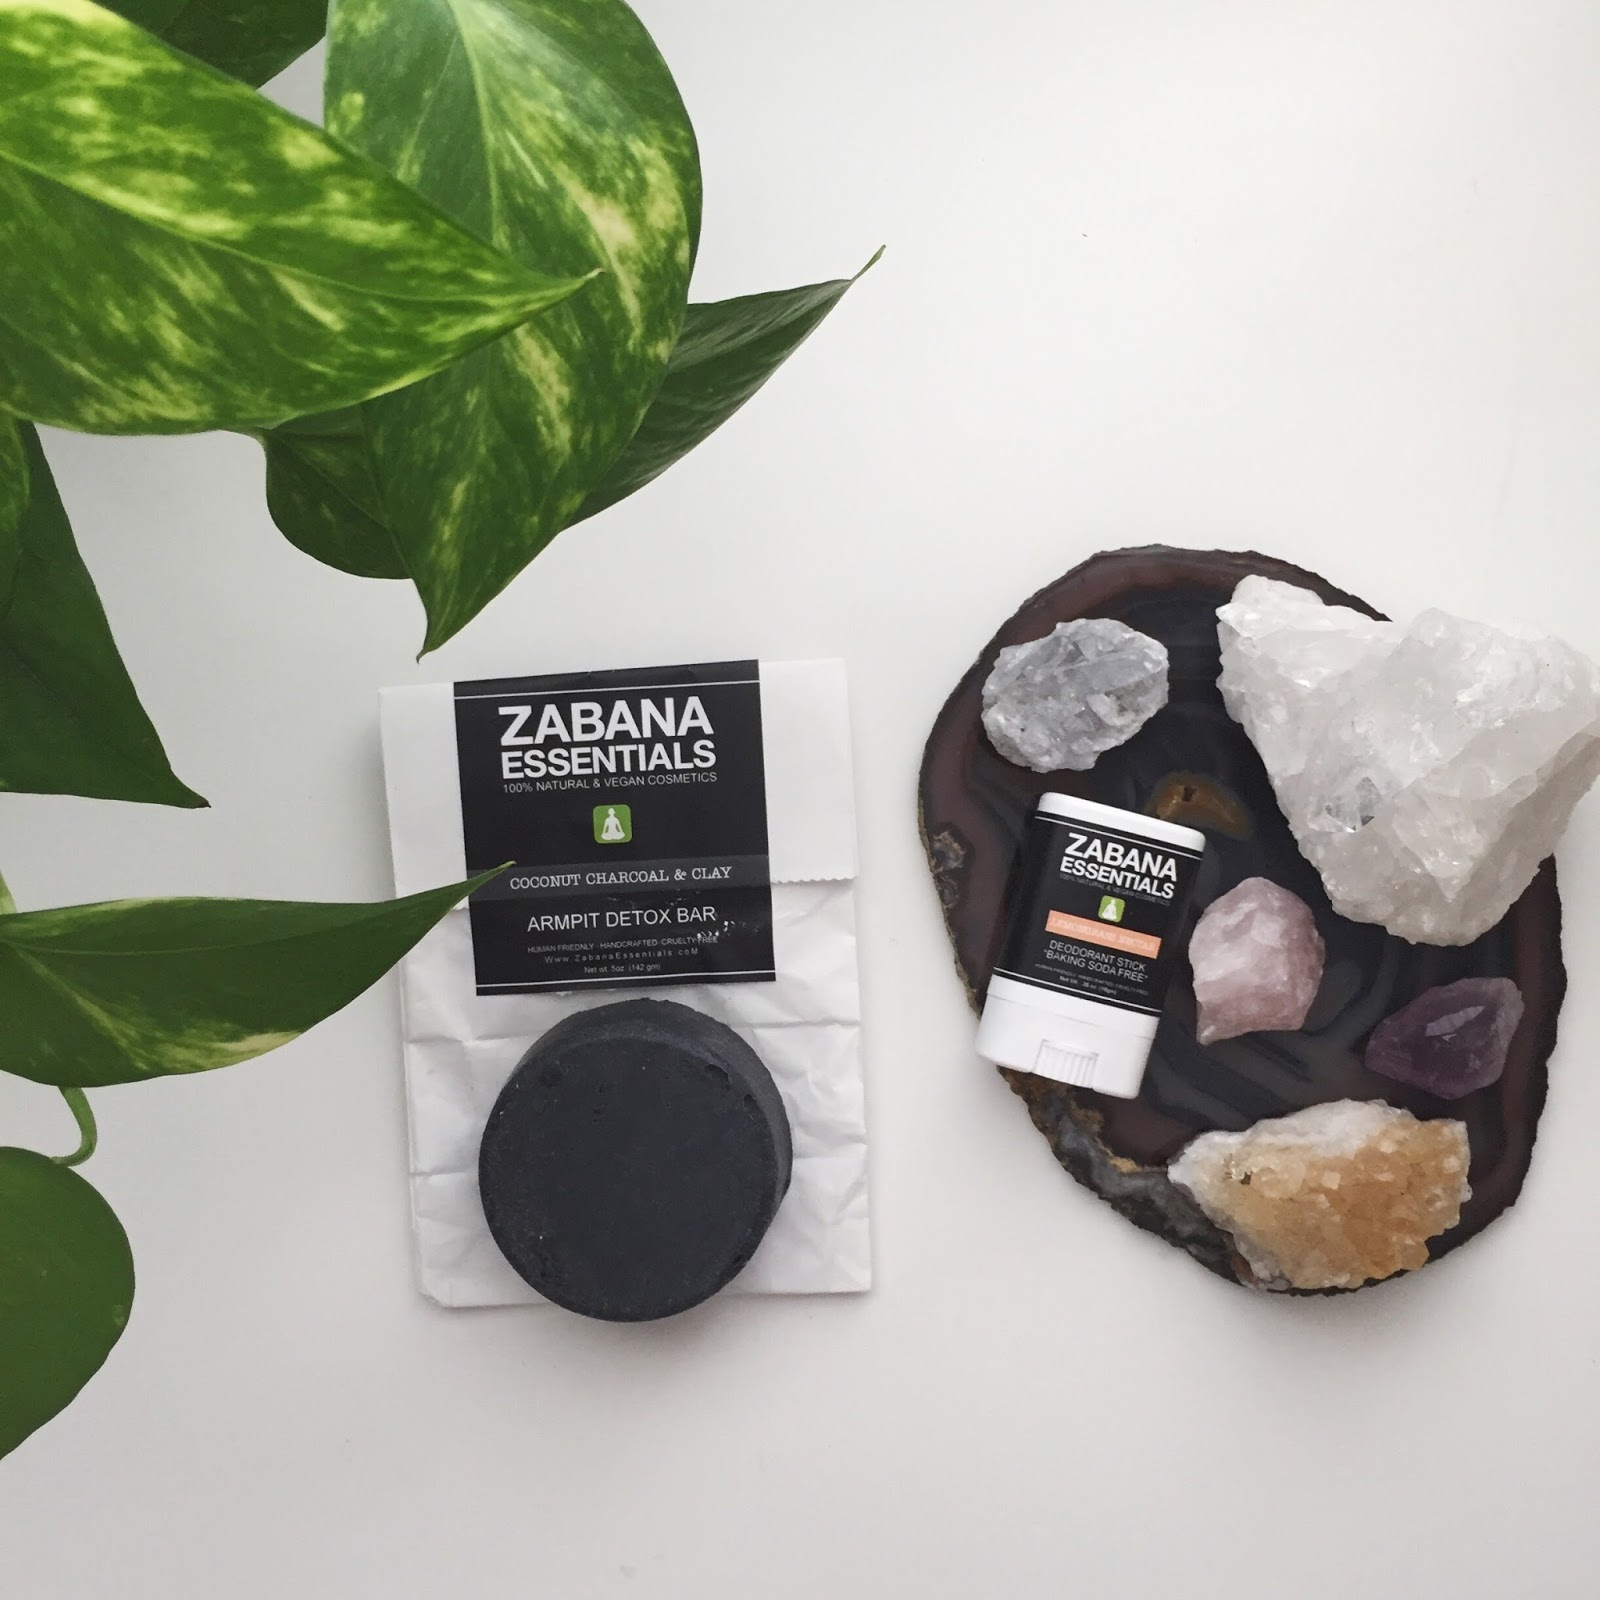 Zabana Essentials Baking Soda Free Deodorant and Armpit Bar Review